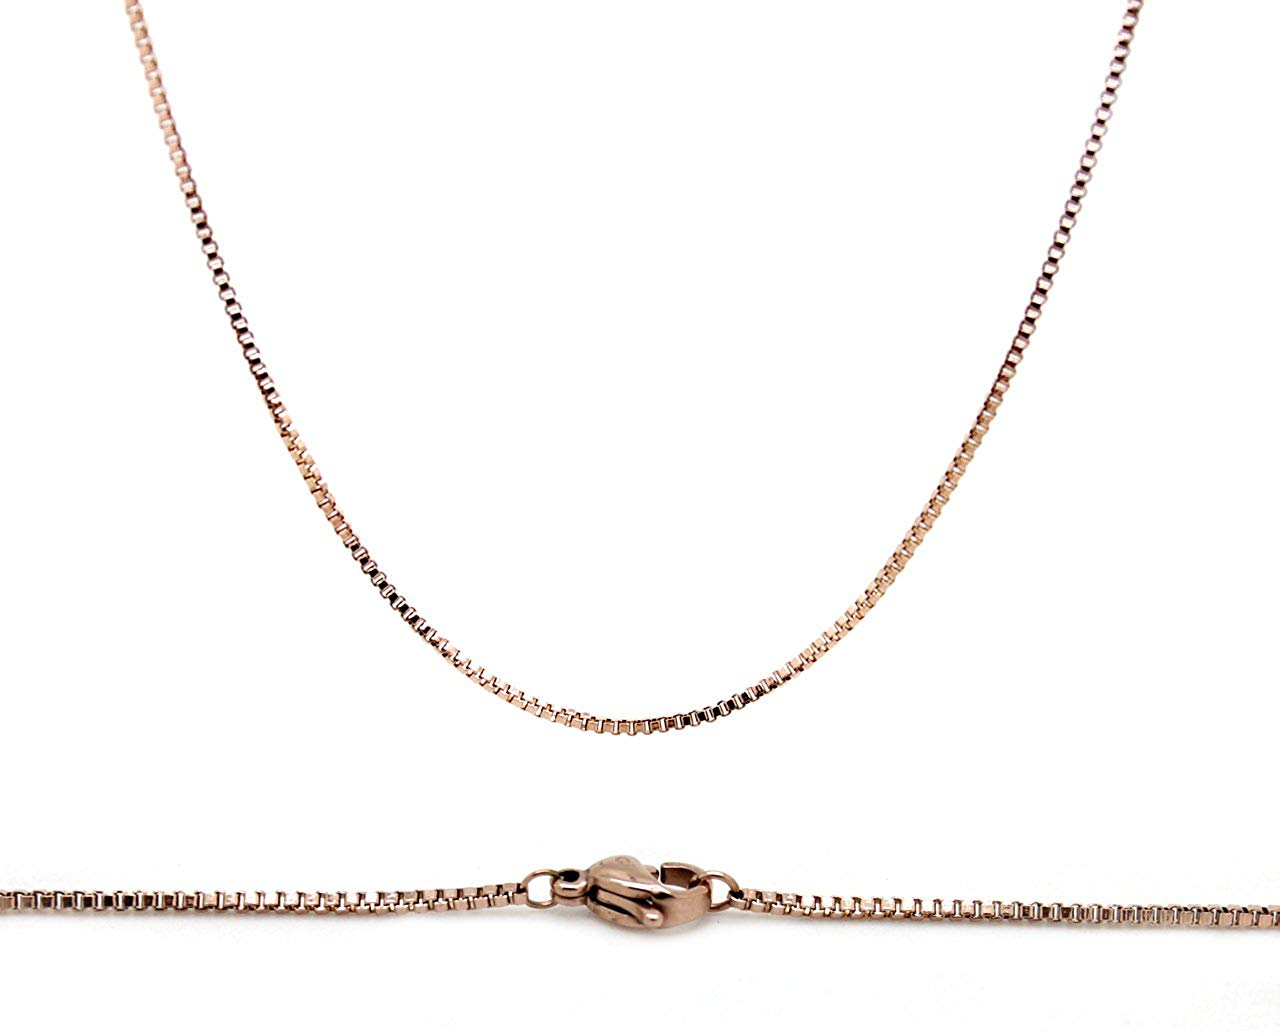 Chelsea Jewelry Basic Collections 1.2mm Wide 18K Rose Gold Ultra Slim Rope Chain Necklace